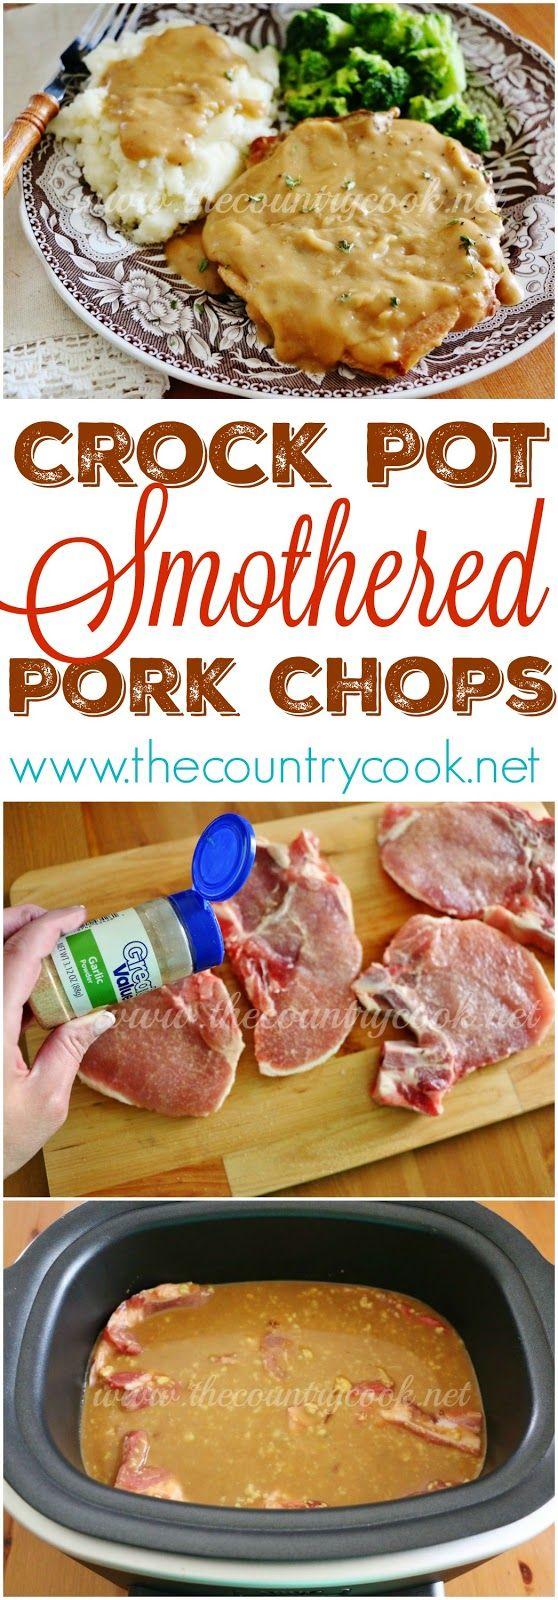 The Country Cook: Crock Pot Smothered Pork Chops